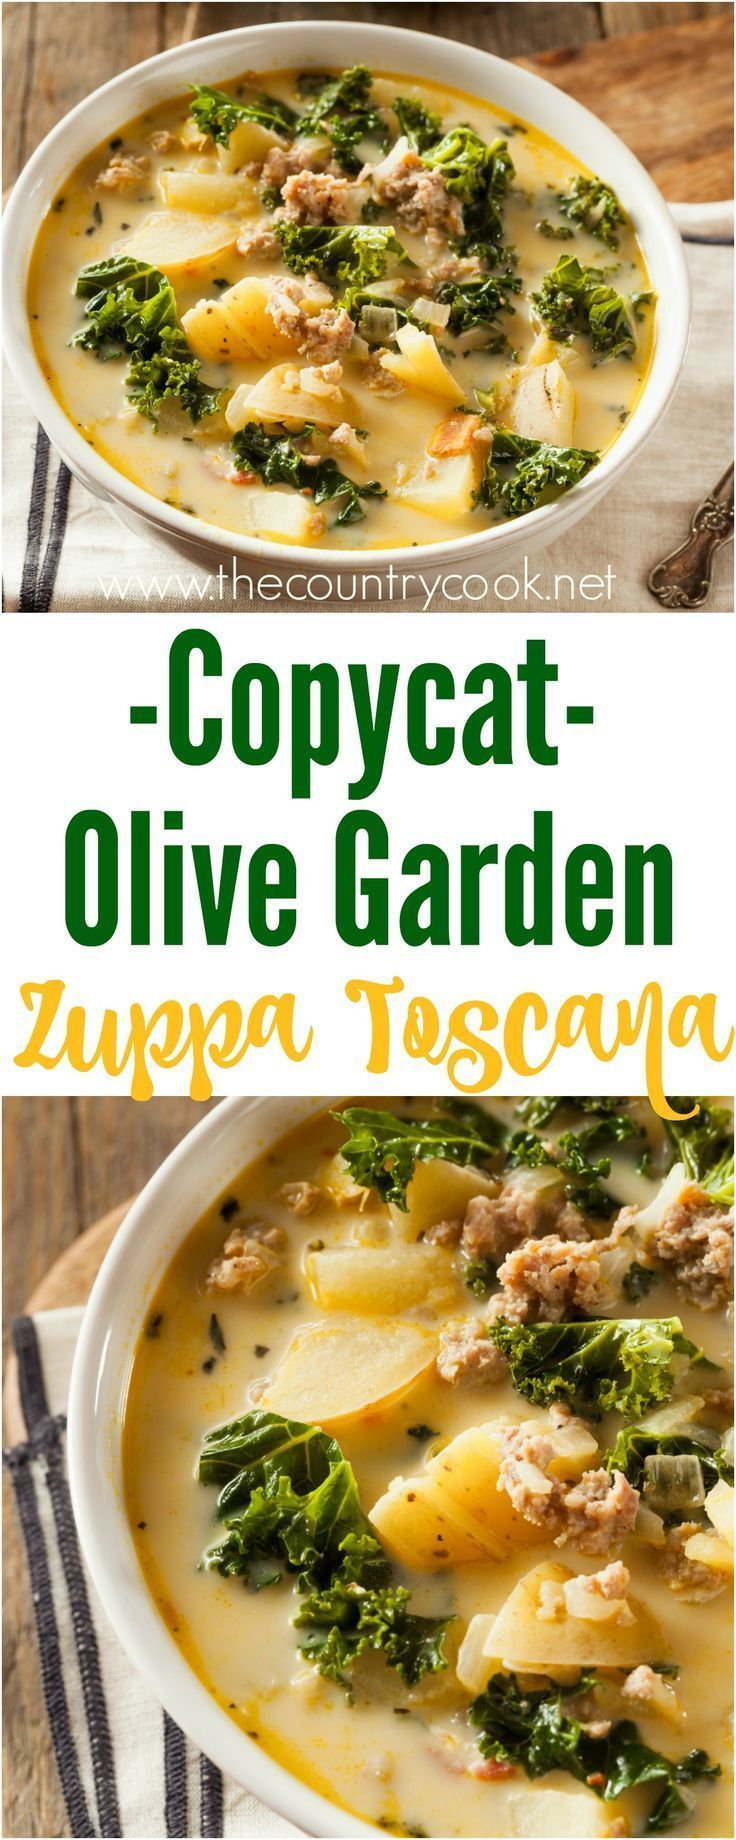 garden zuppa toscana Copycat Olive Garden Zuppa Toscana recipe from The Country Cook. I think it's even better than the one you get at Olive Garden - SO good!Copycat Olive Garden Zuppa Toscana recipe from The Country Cook. I think it's even better than the one you get at Olive Garden - SO good!